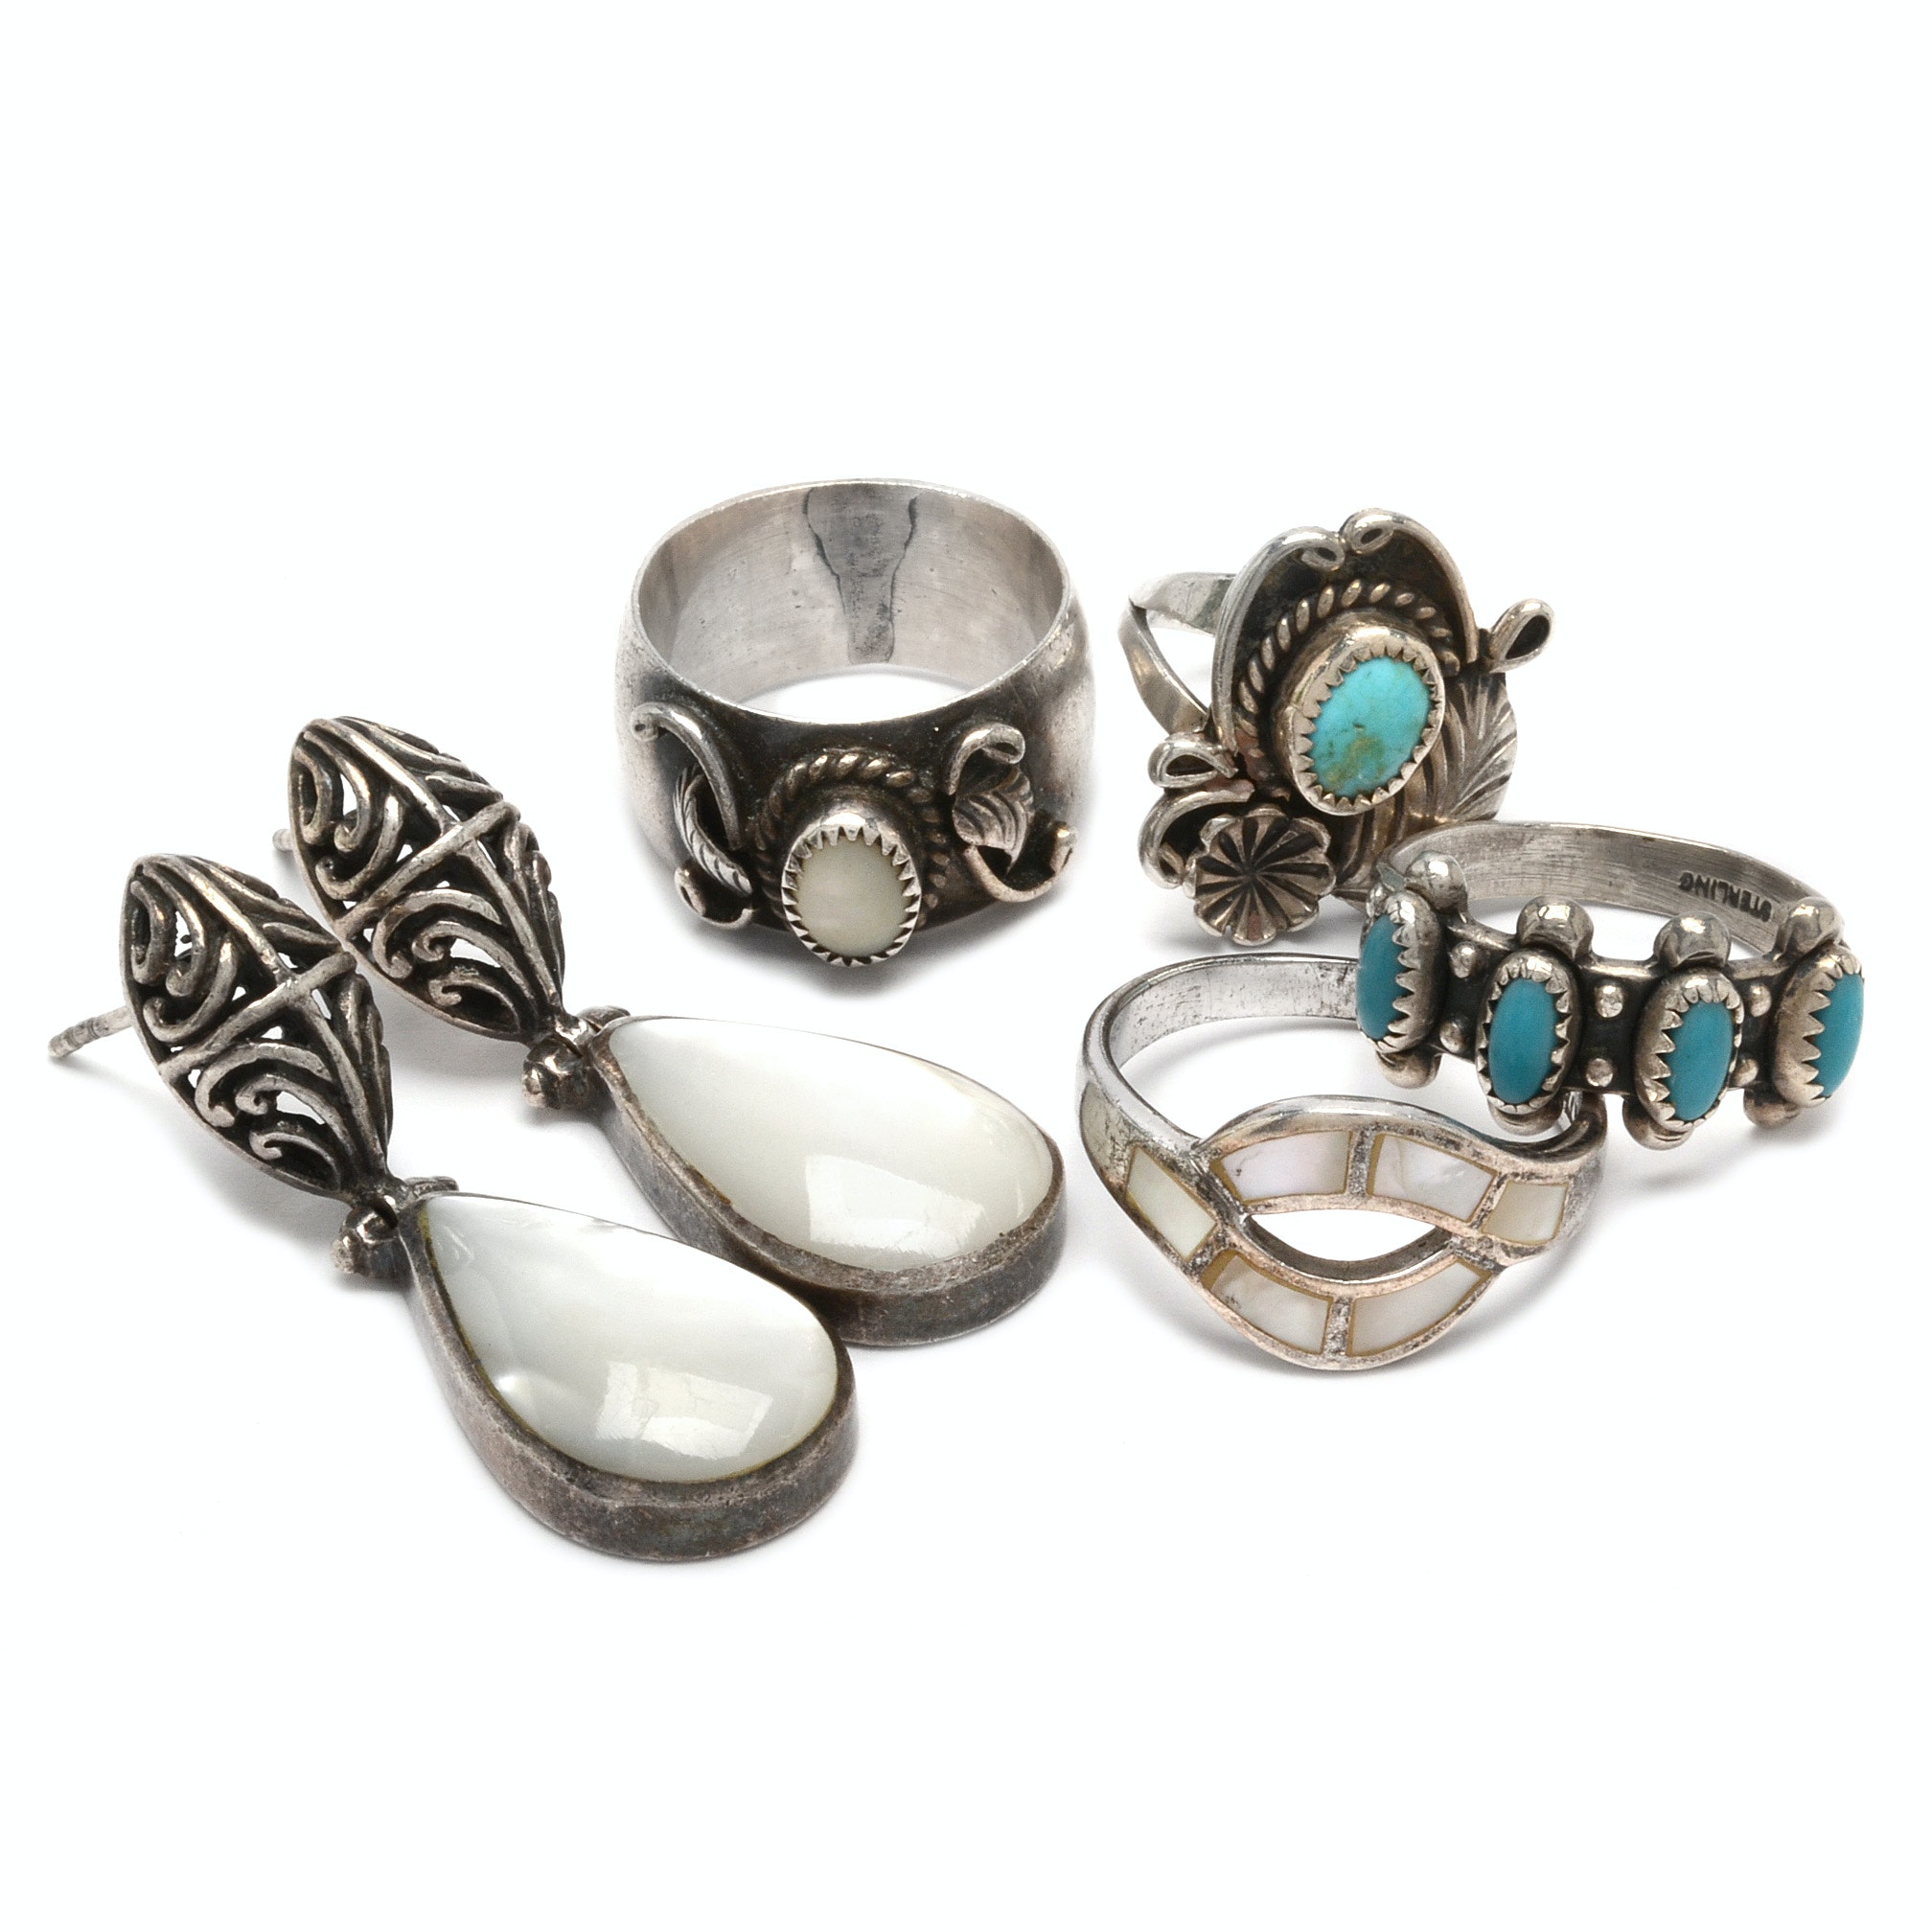 Assortment of Turquoise and Mother of Pear Jewelry